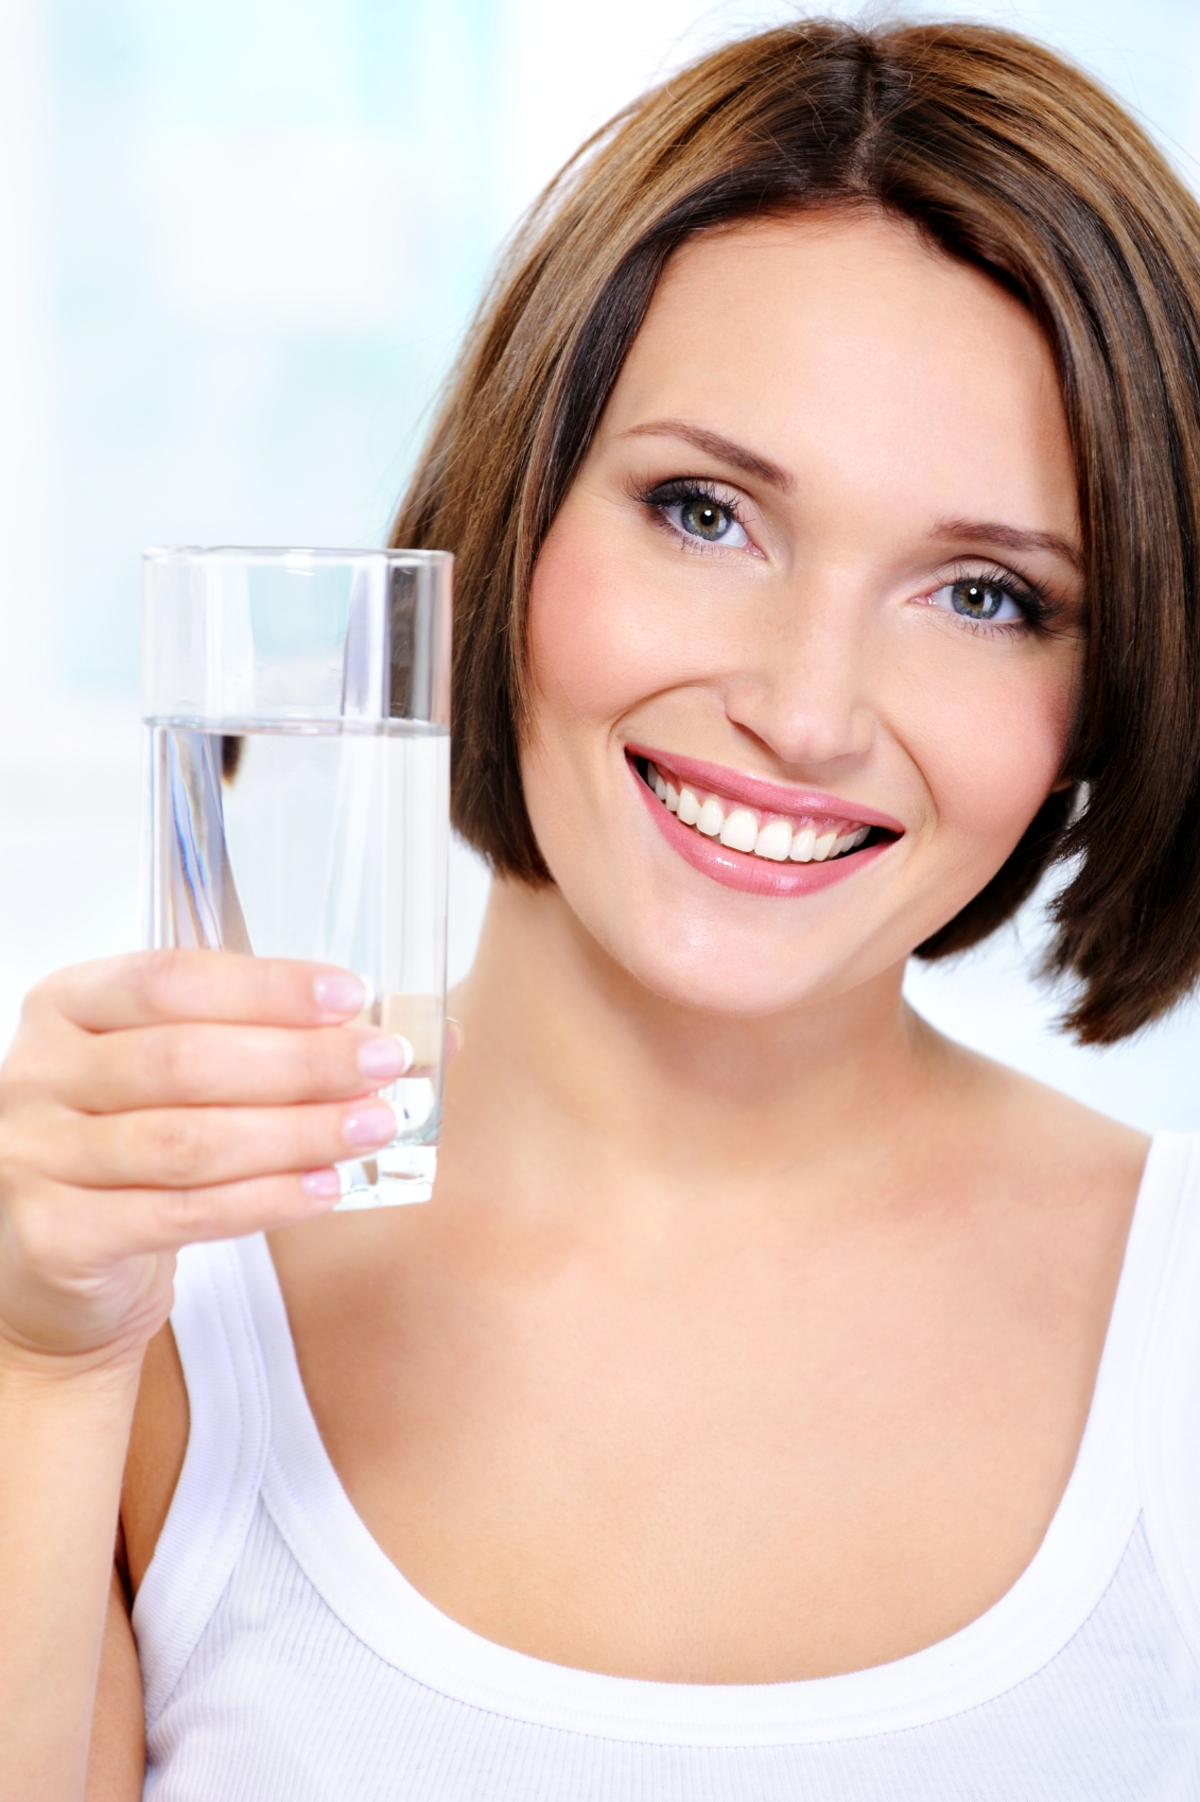 The beautiful smiling young girl holds a glass of clean water